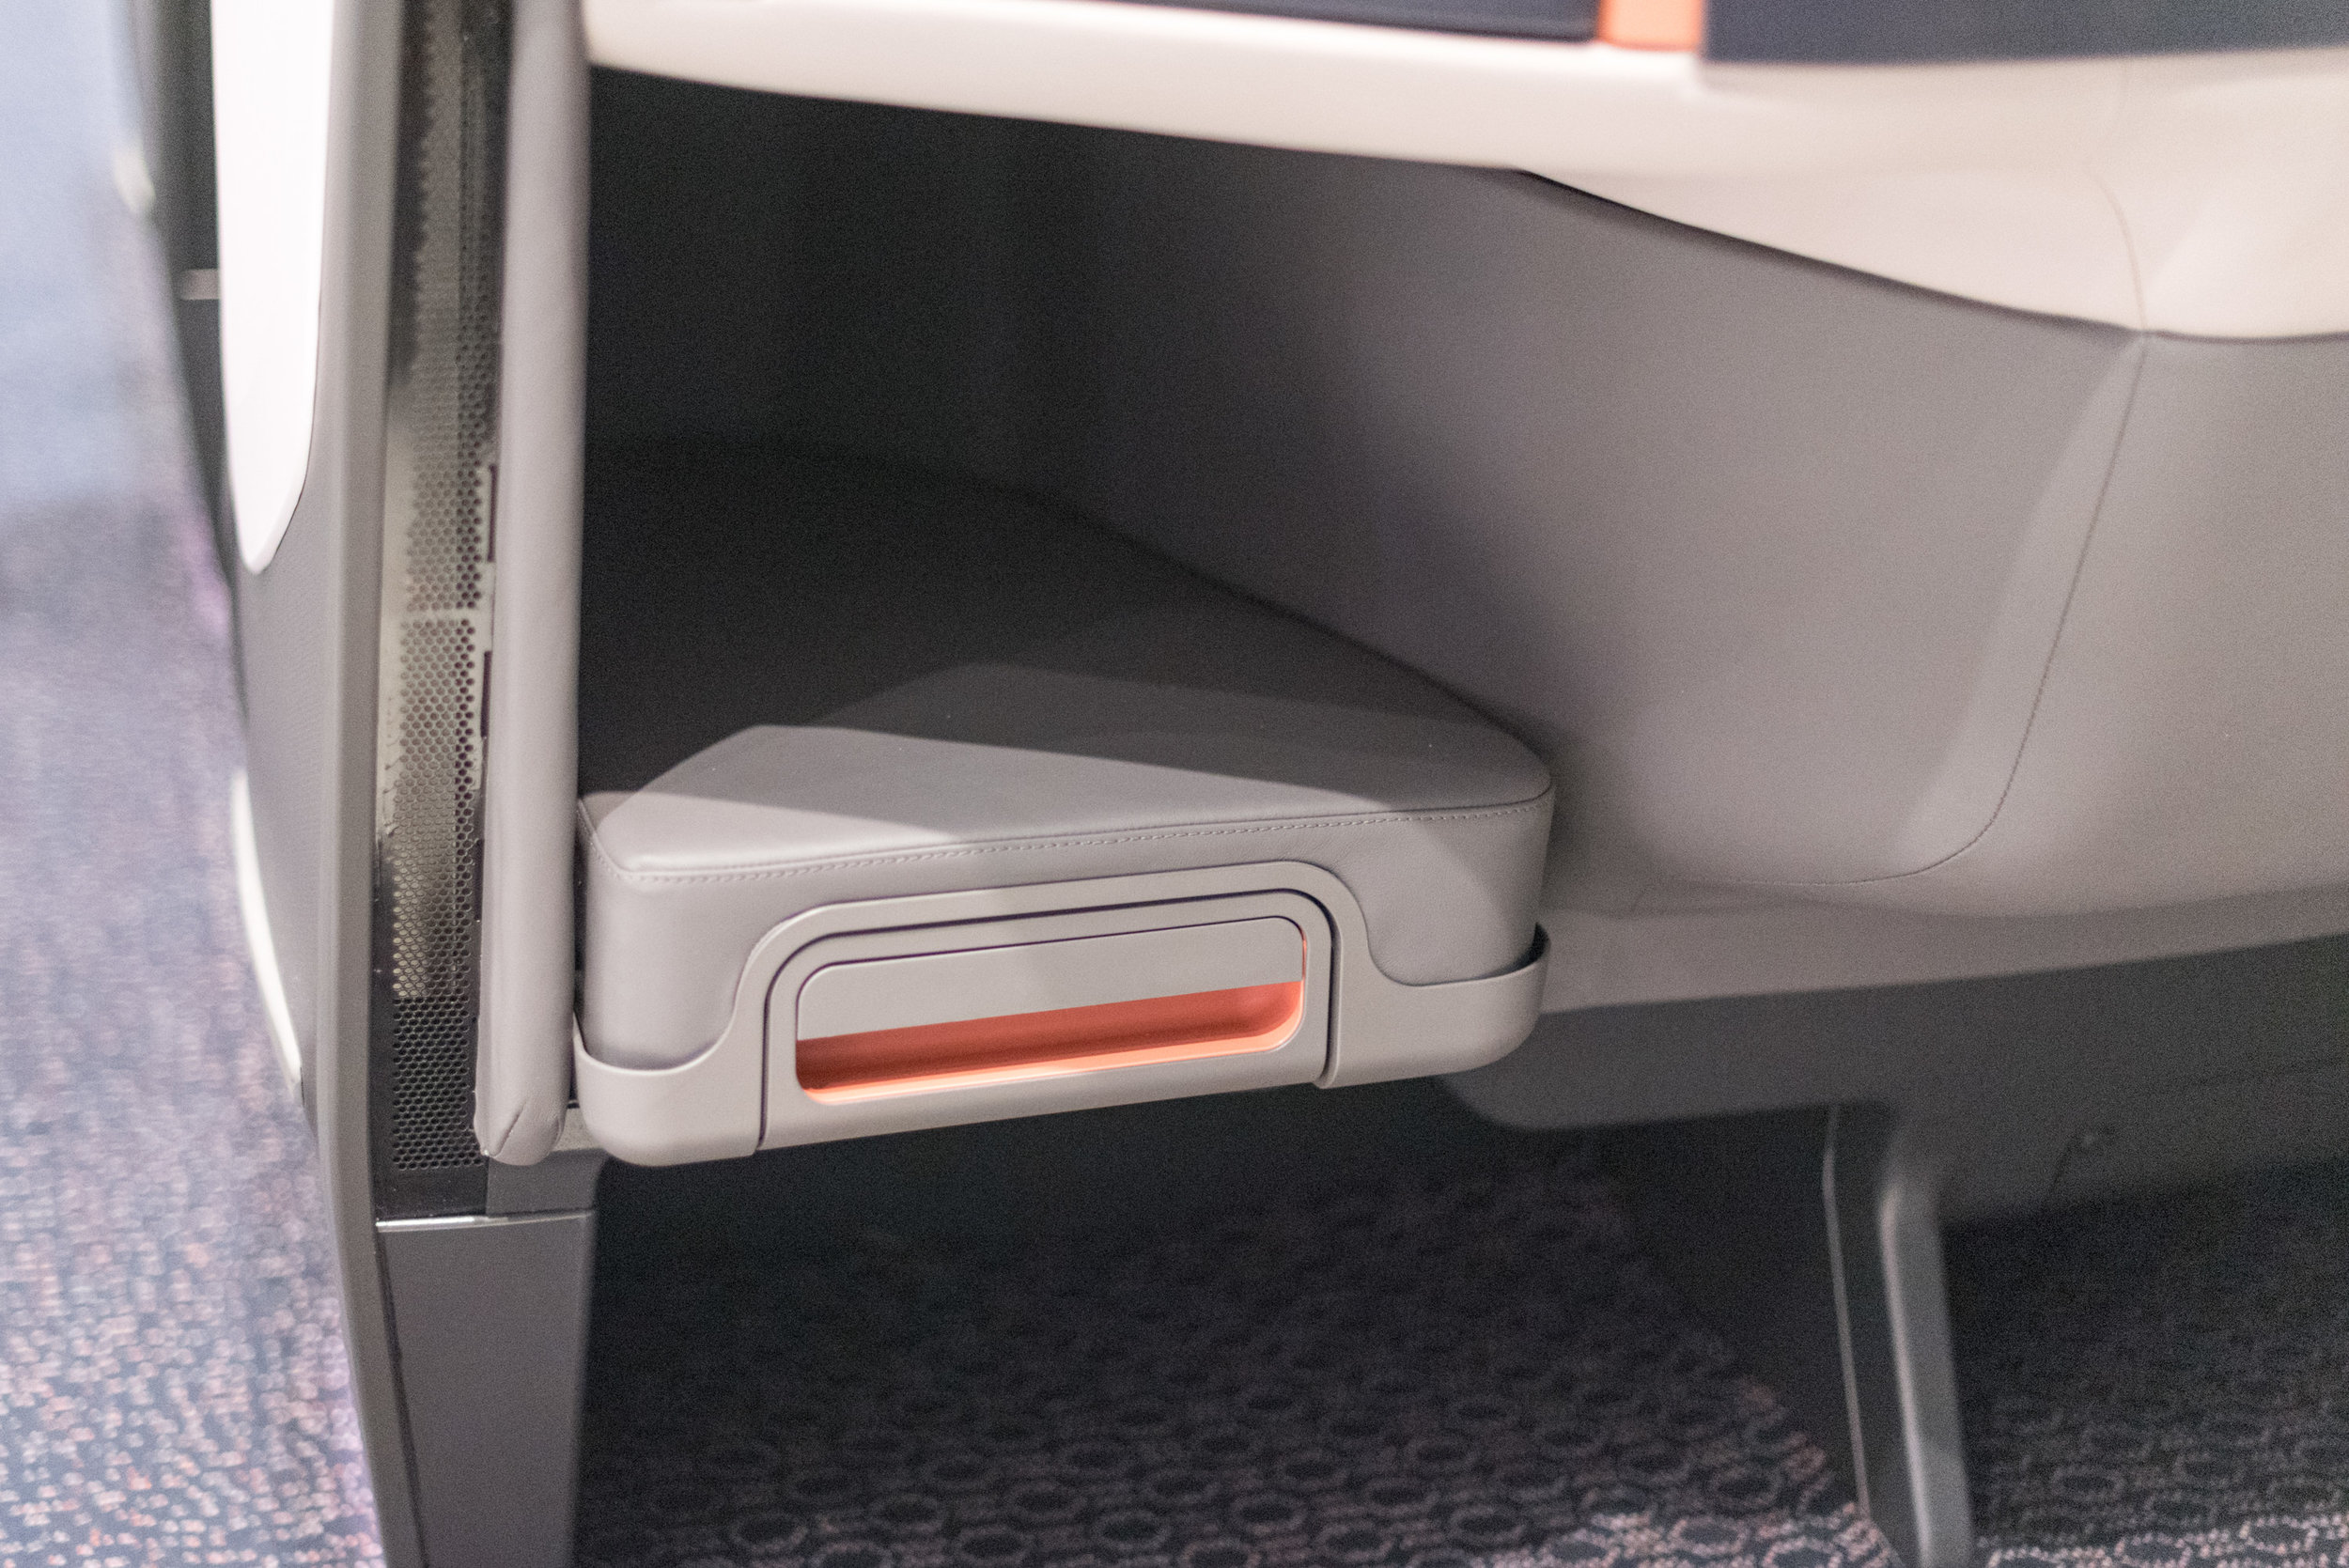 Larger Foot Rest Area  New Business Class (2017) Product on Singapore Airlines' A380